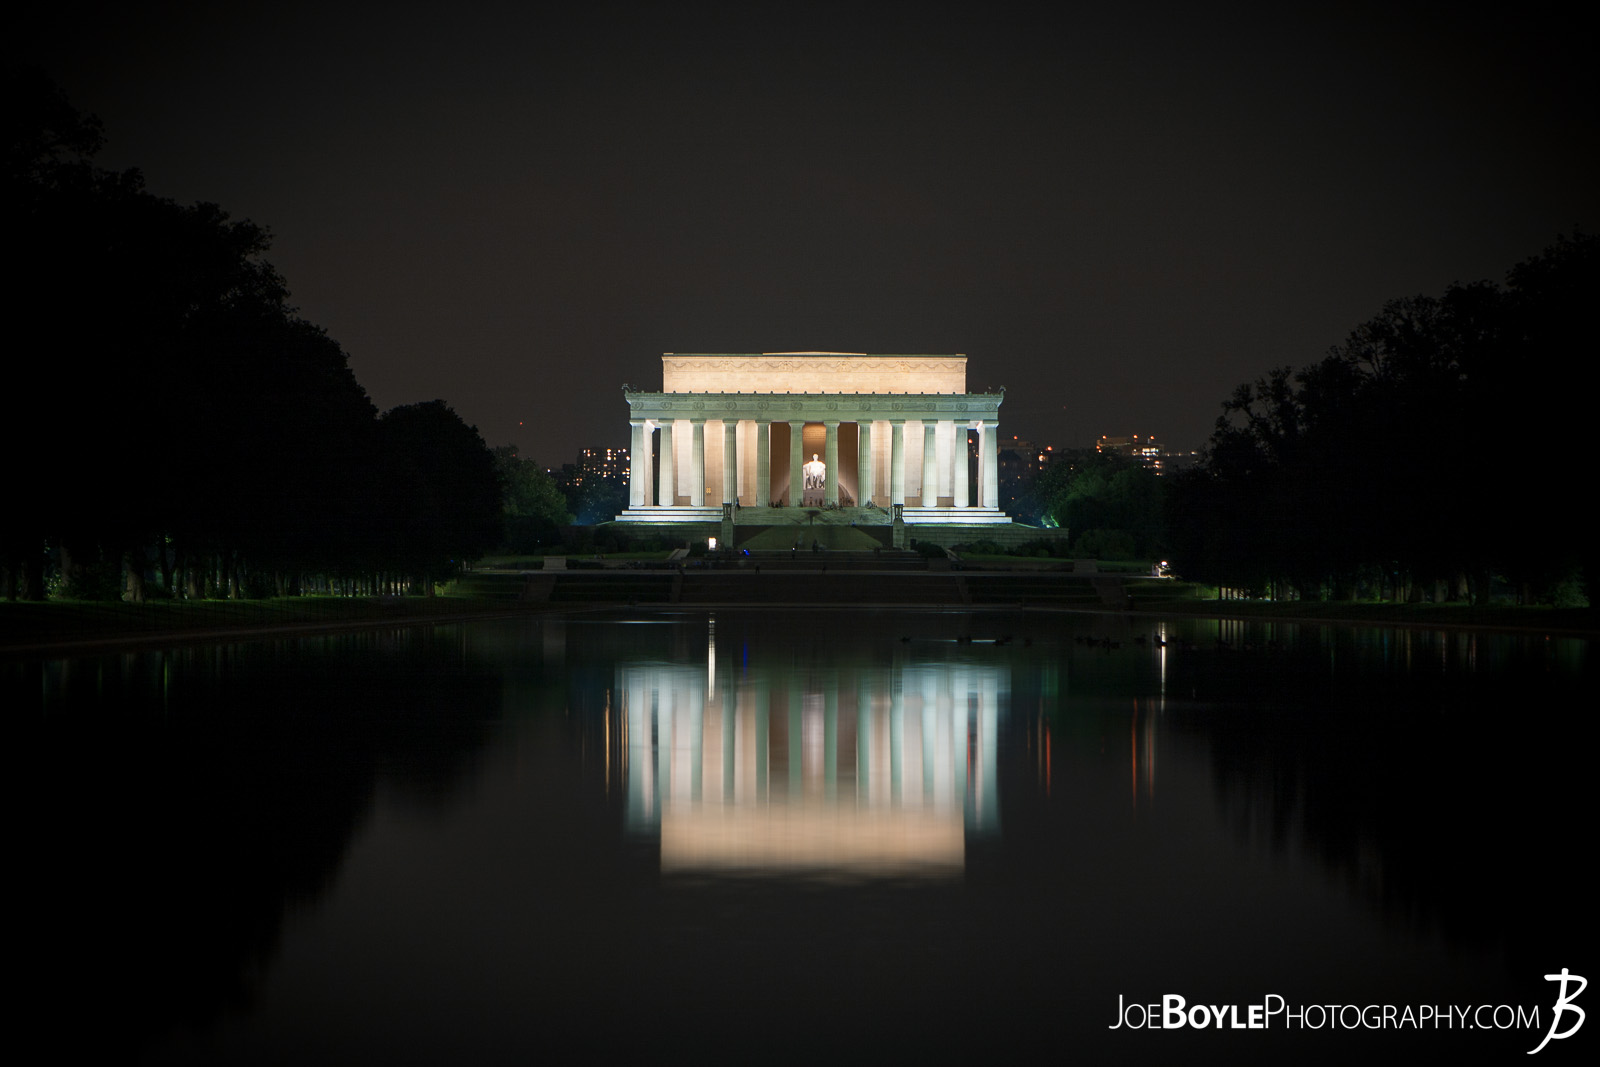 While I was in Washington, DC I was able to take some great night images of a few of the iconic landmarks that make up this city! Here is an image of the Lincoln Memorial with the reflecting pool!